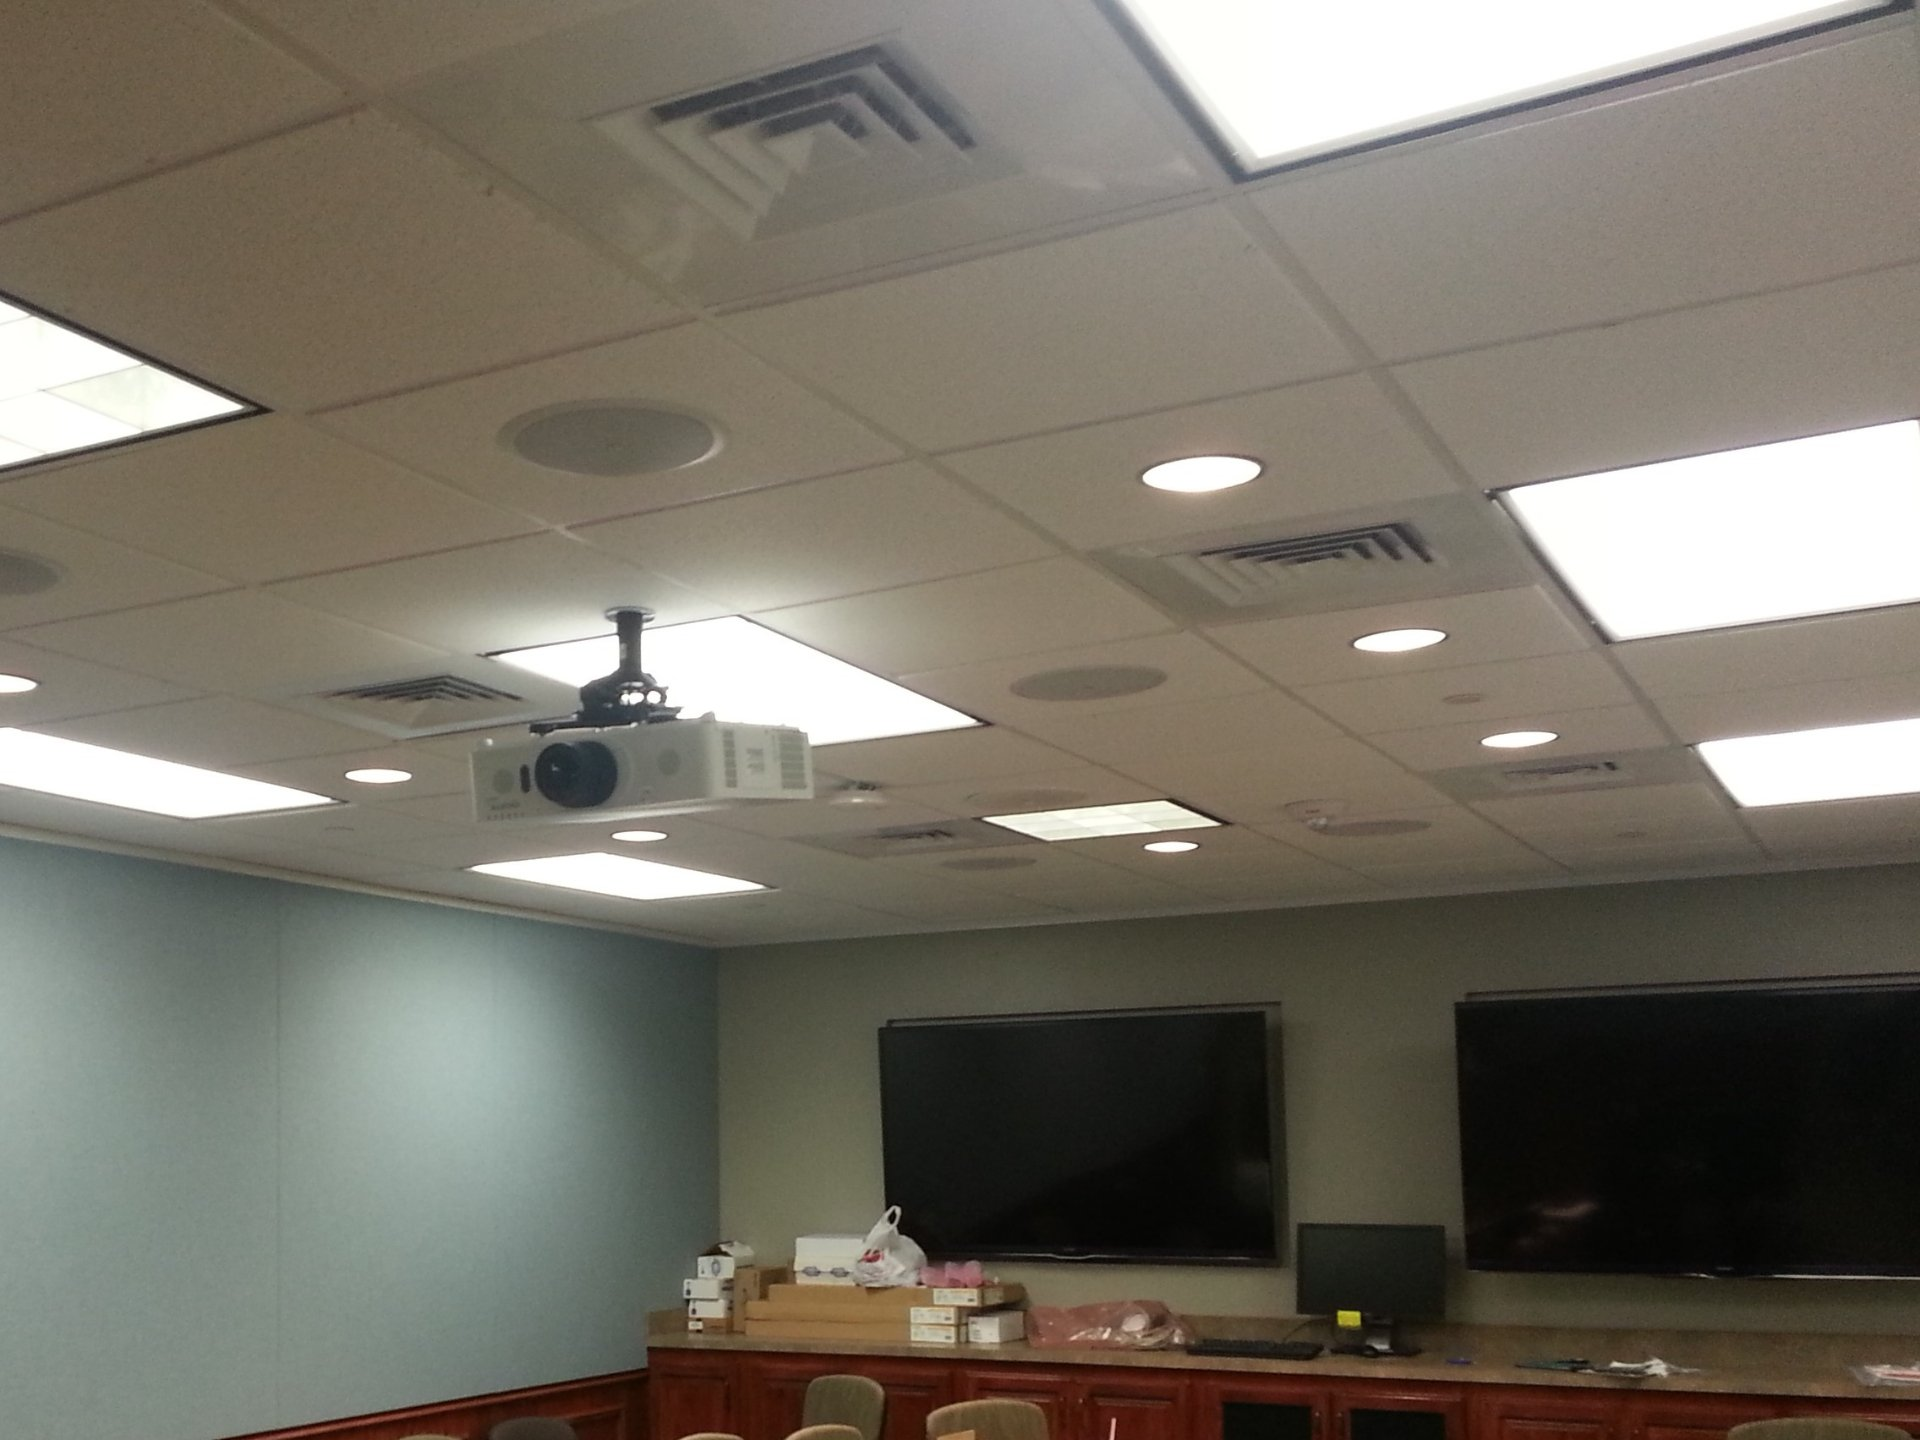 Installation of Christie projectors, muiltiple displays, and Atlas ceiling speakers at BSEE Conference room